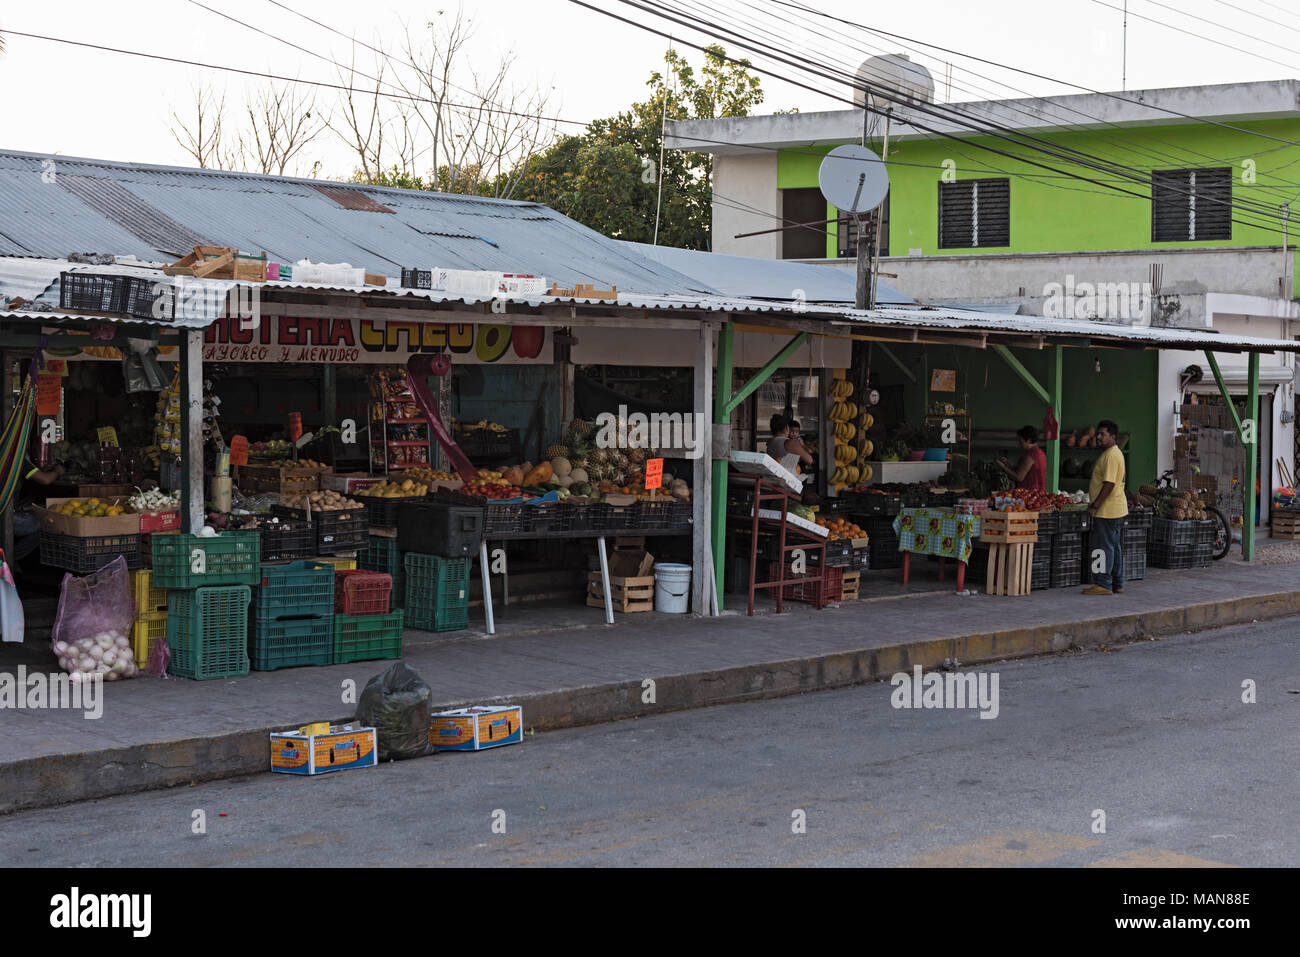 Fruit and vegetable shop in Xpujil, Campeche, Mexico - Stock Image